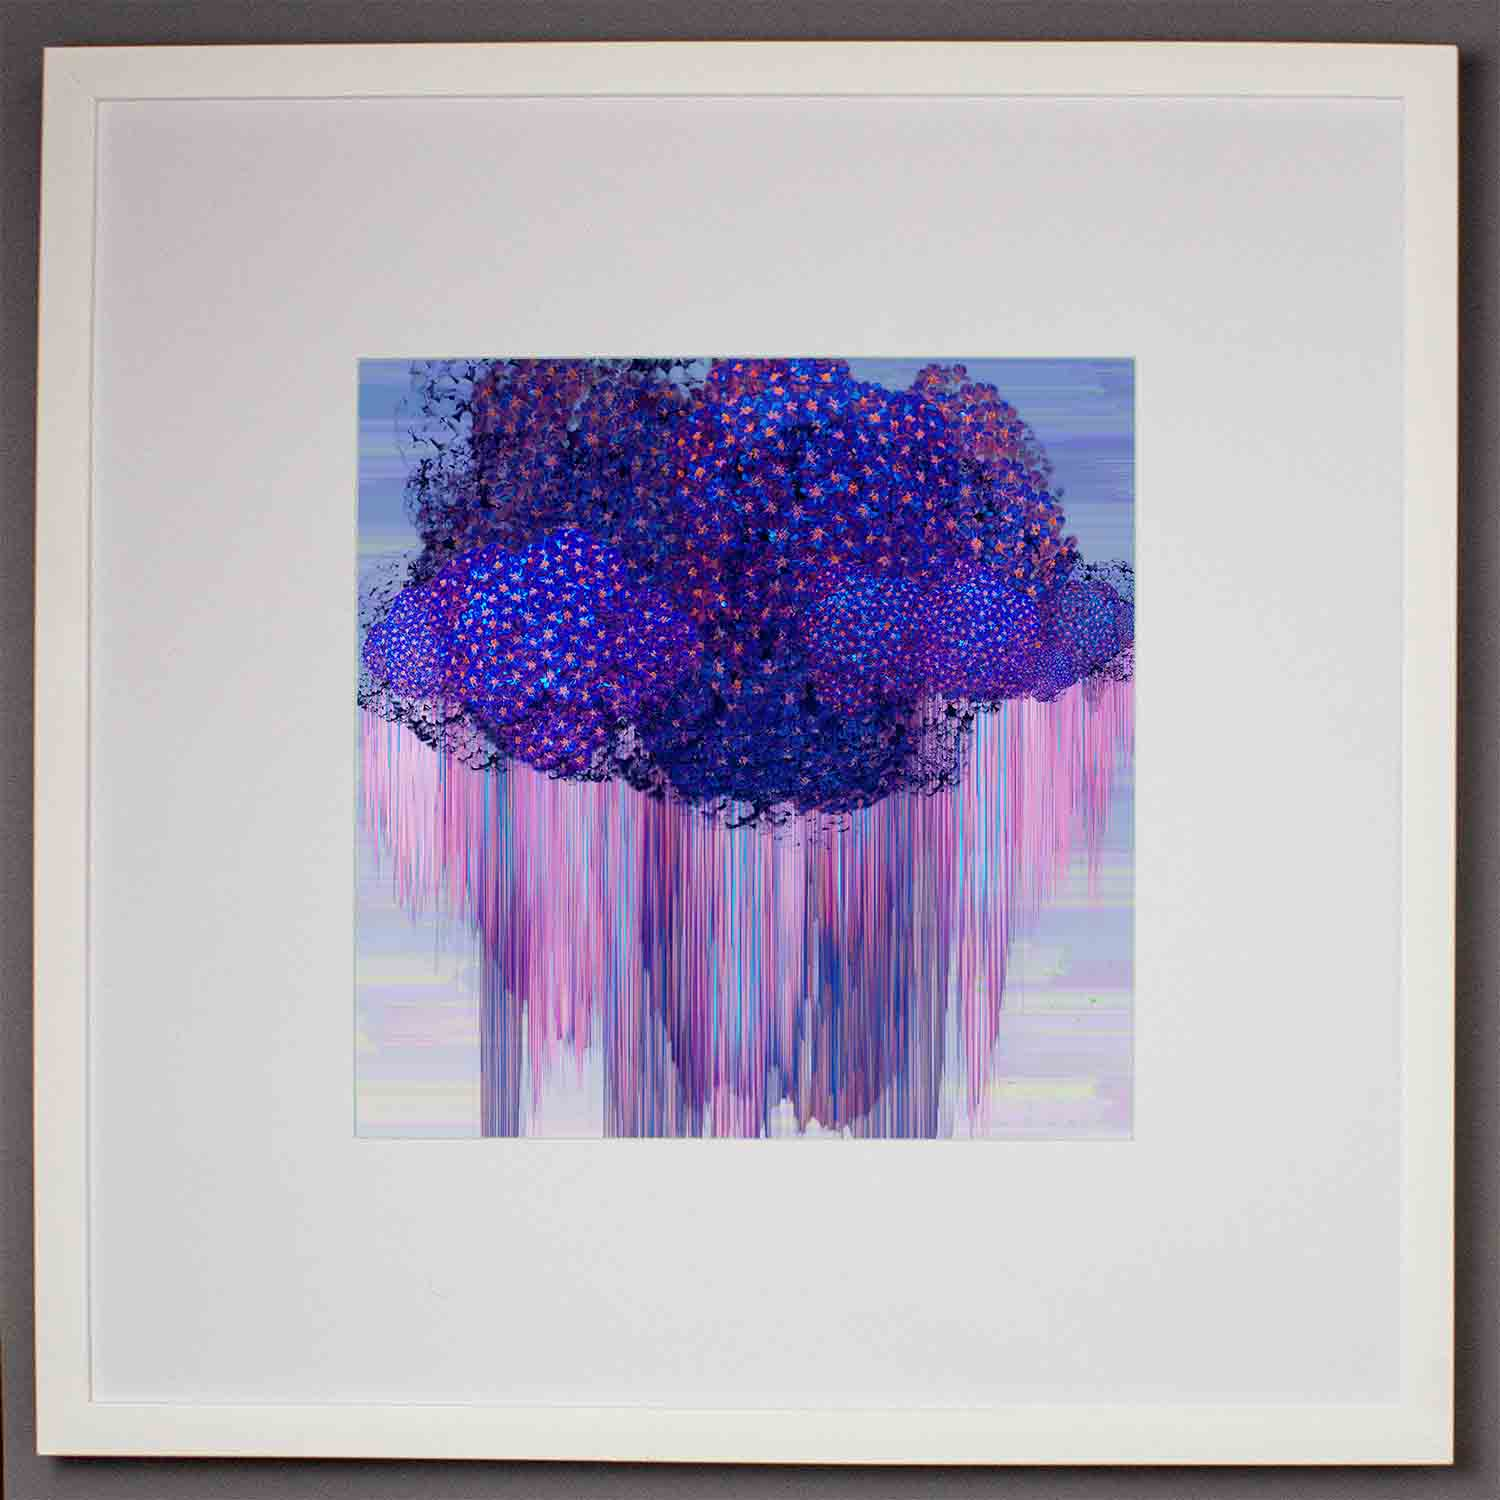 visual-flux-purple-rain-medframe.jpg